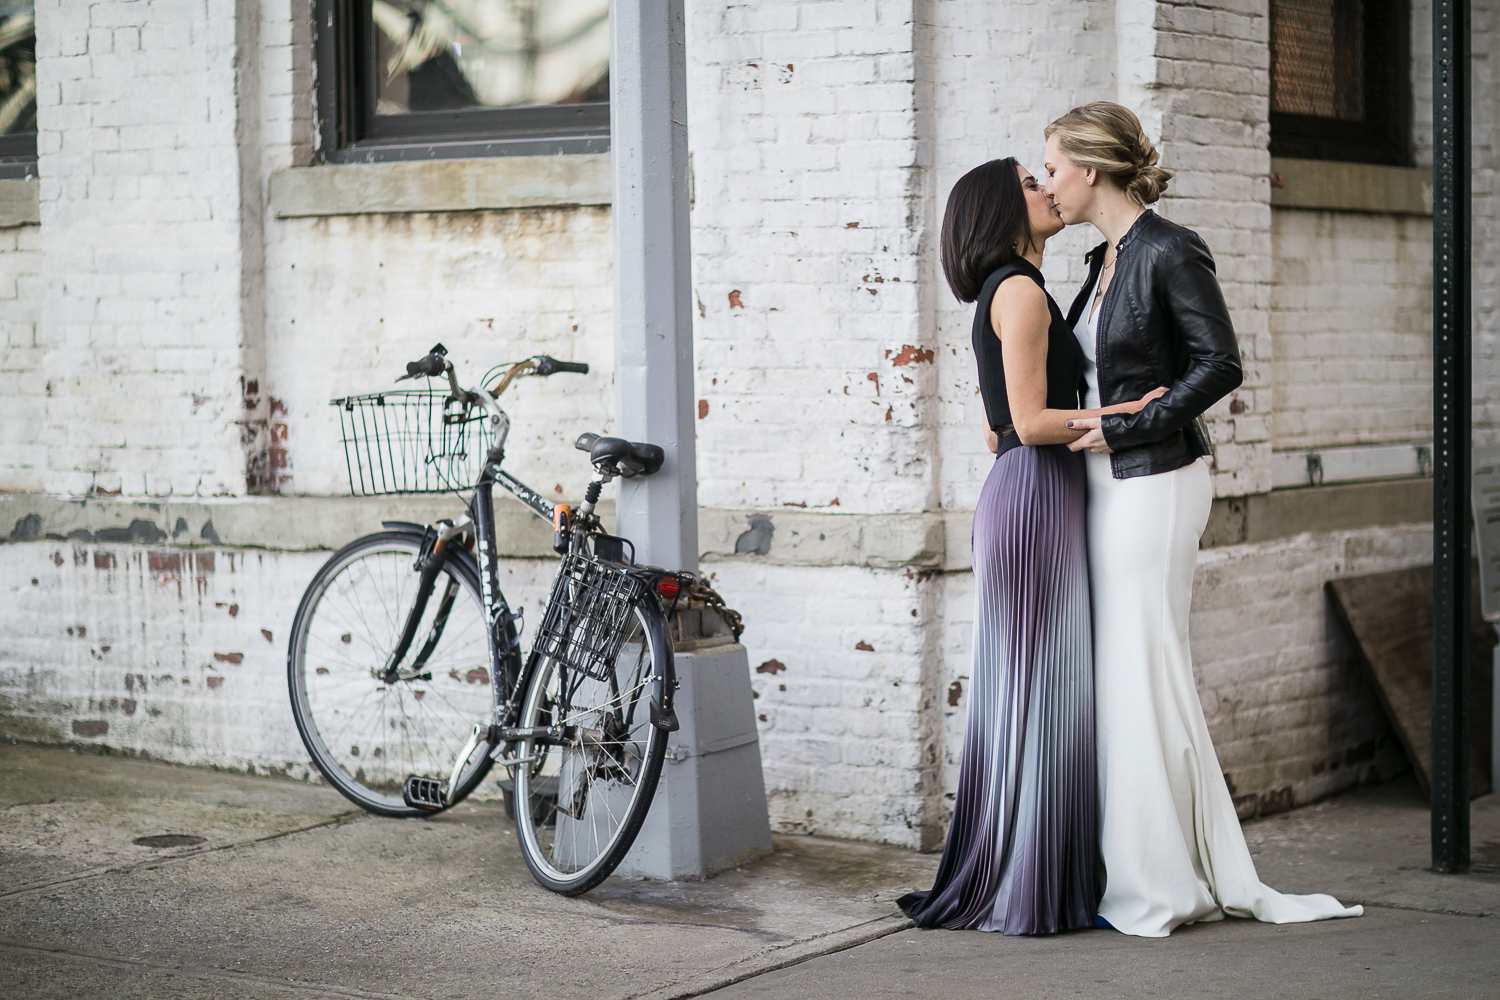 Brides kissing on their wedding day | 26 Bridge Wedding Photos | Lesbian Brooklyn Wedding | Kristin and Marisa's Wedding